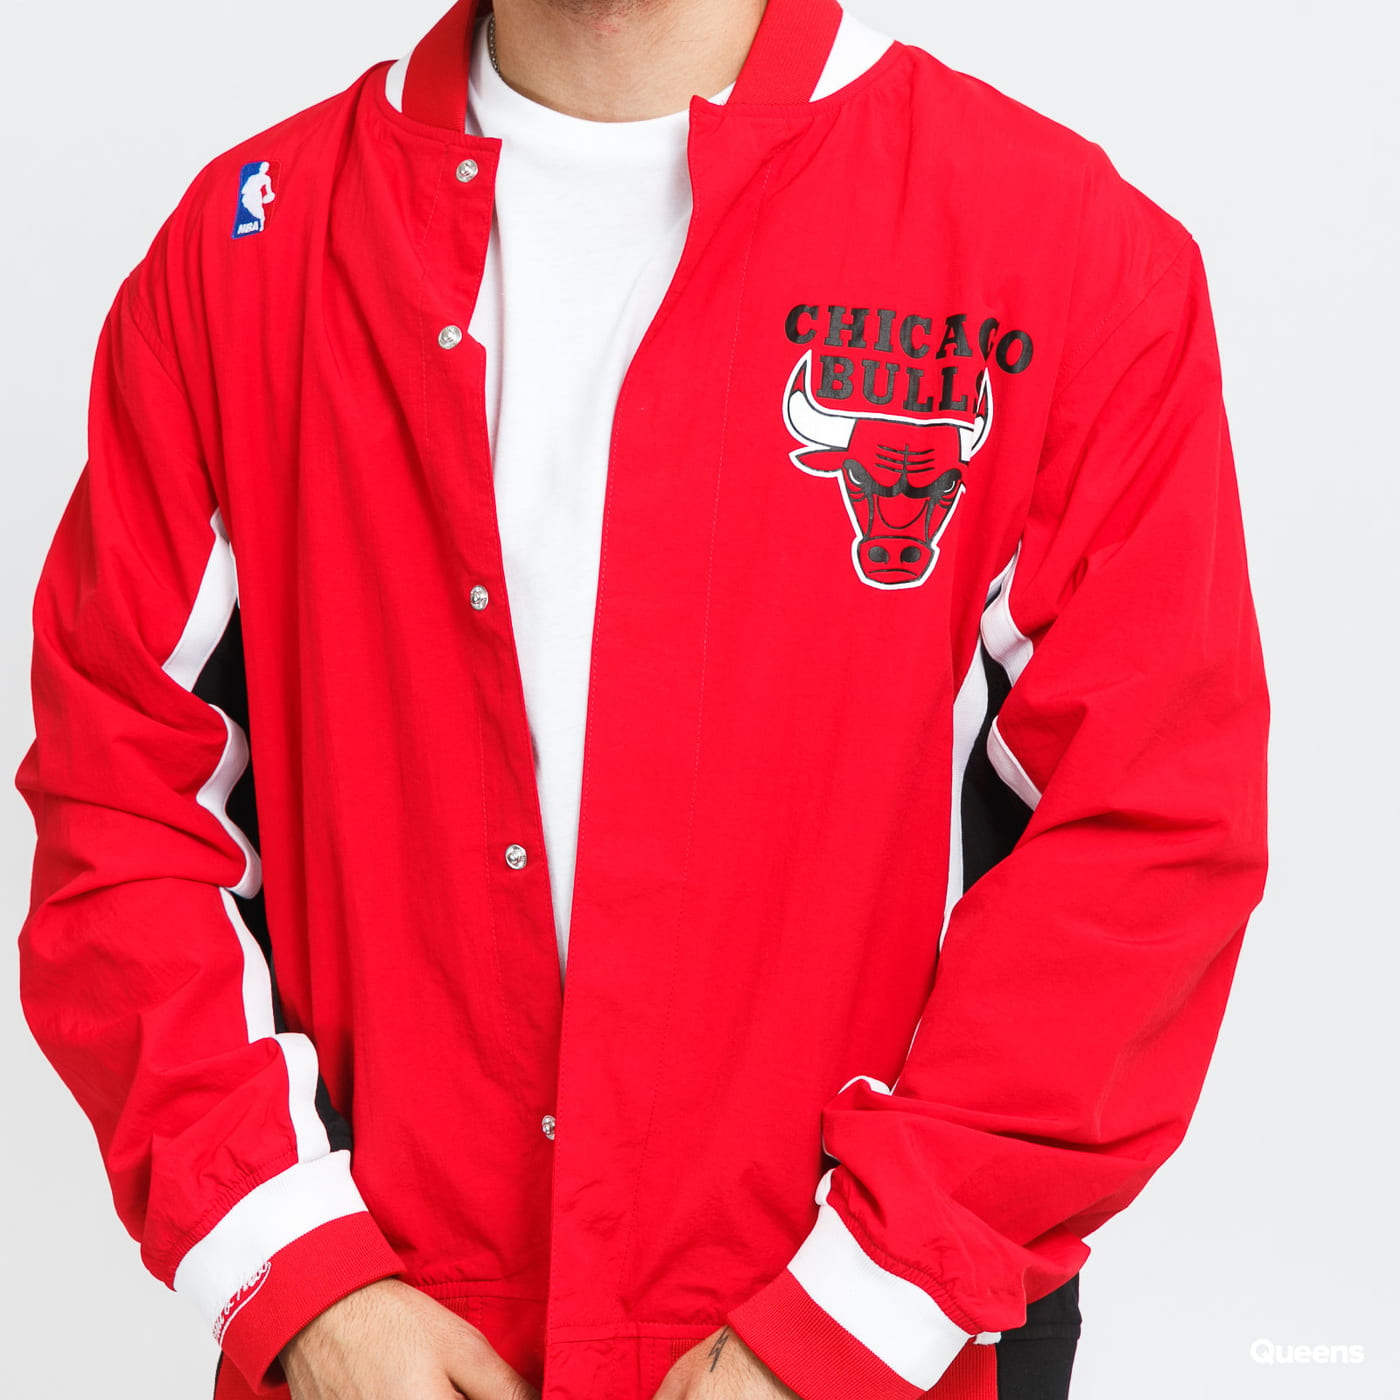 Mitchell & Ness Authentic Warm Up Bulls red / black / white